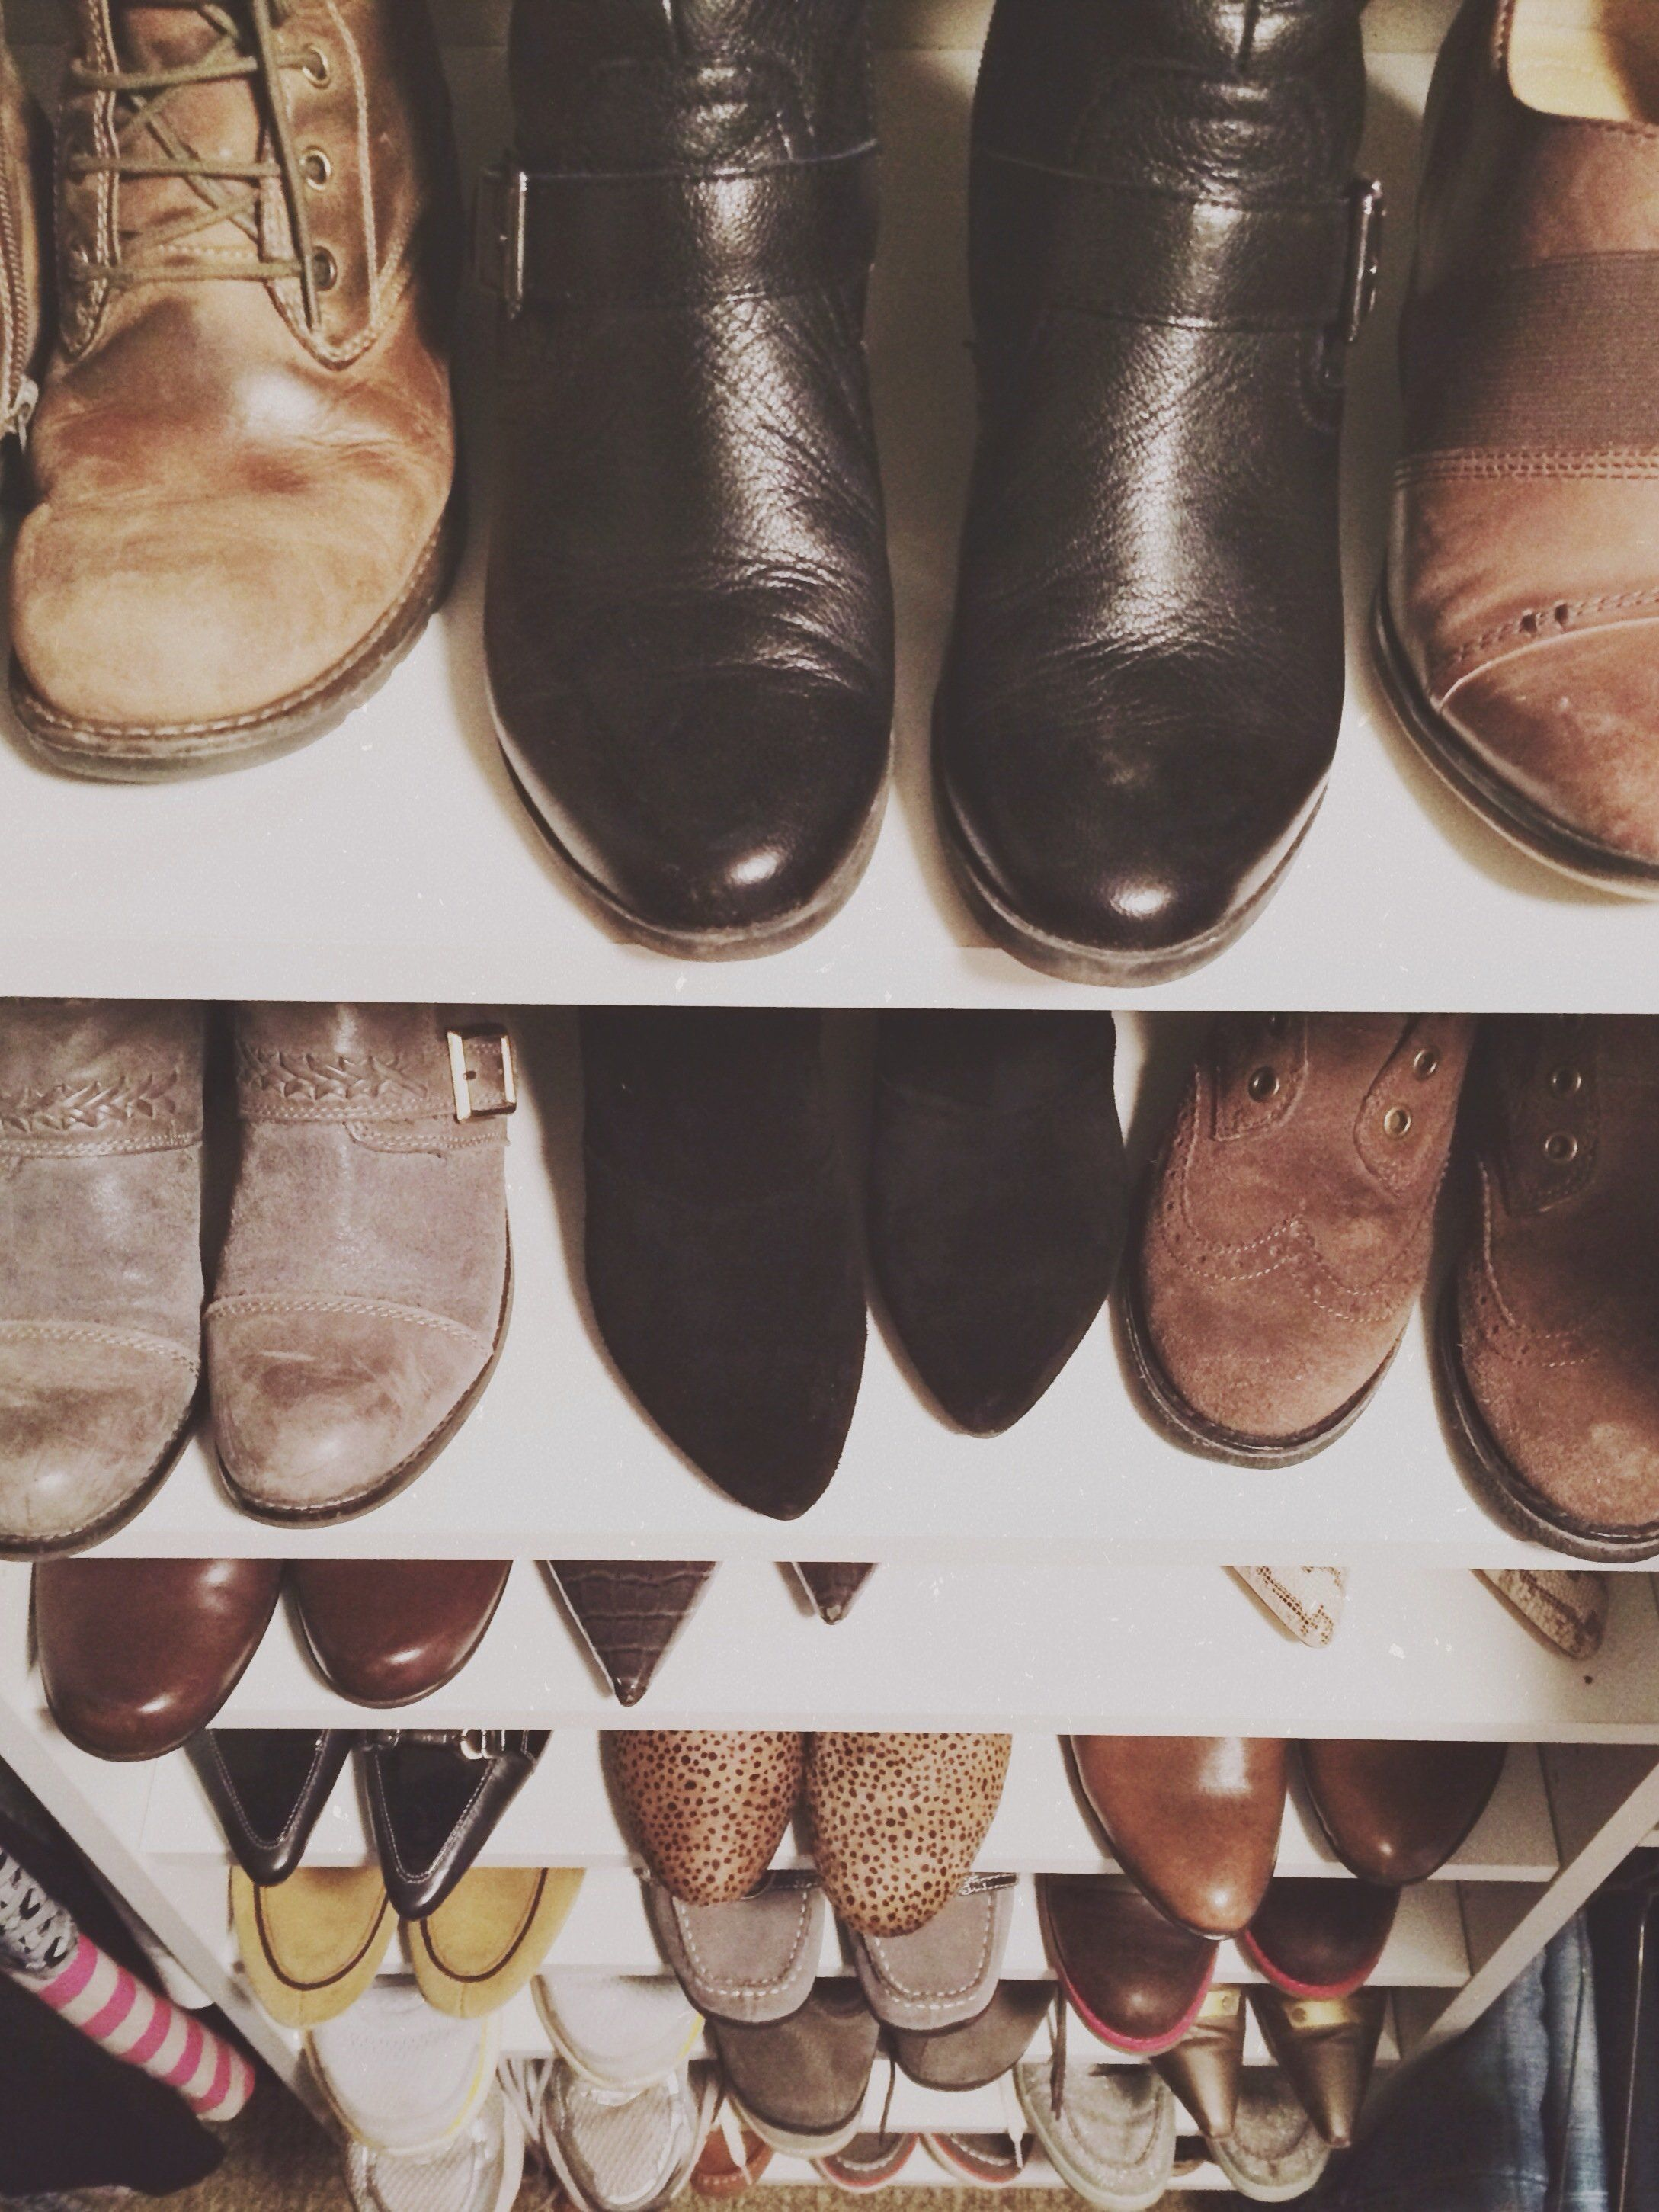 Closet Full of Shoes